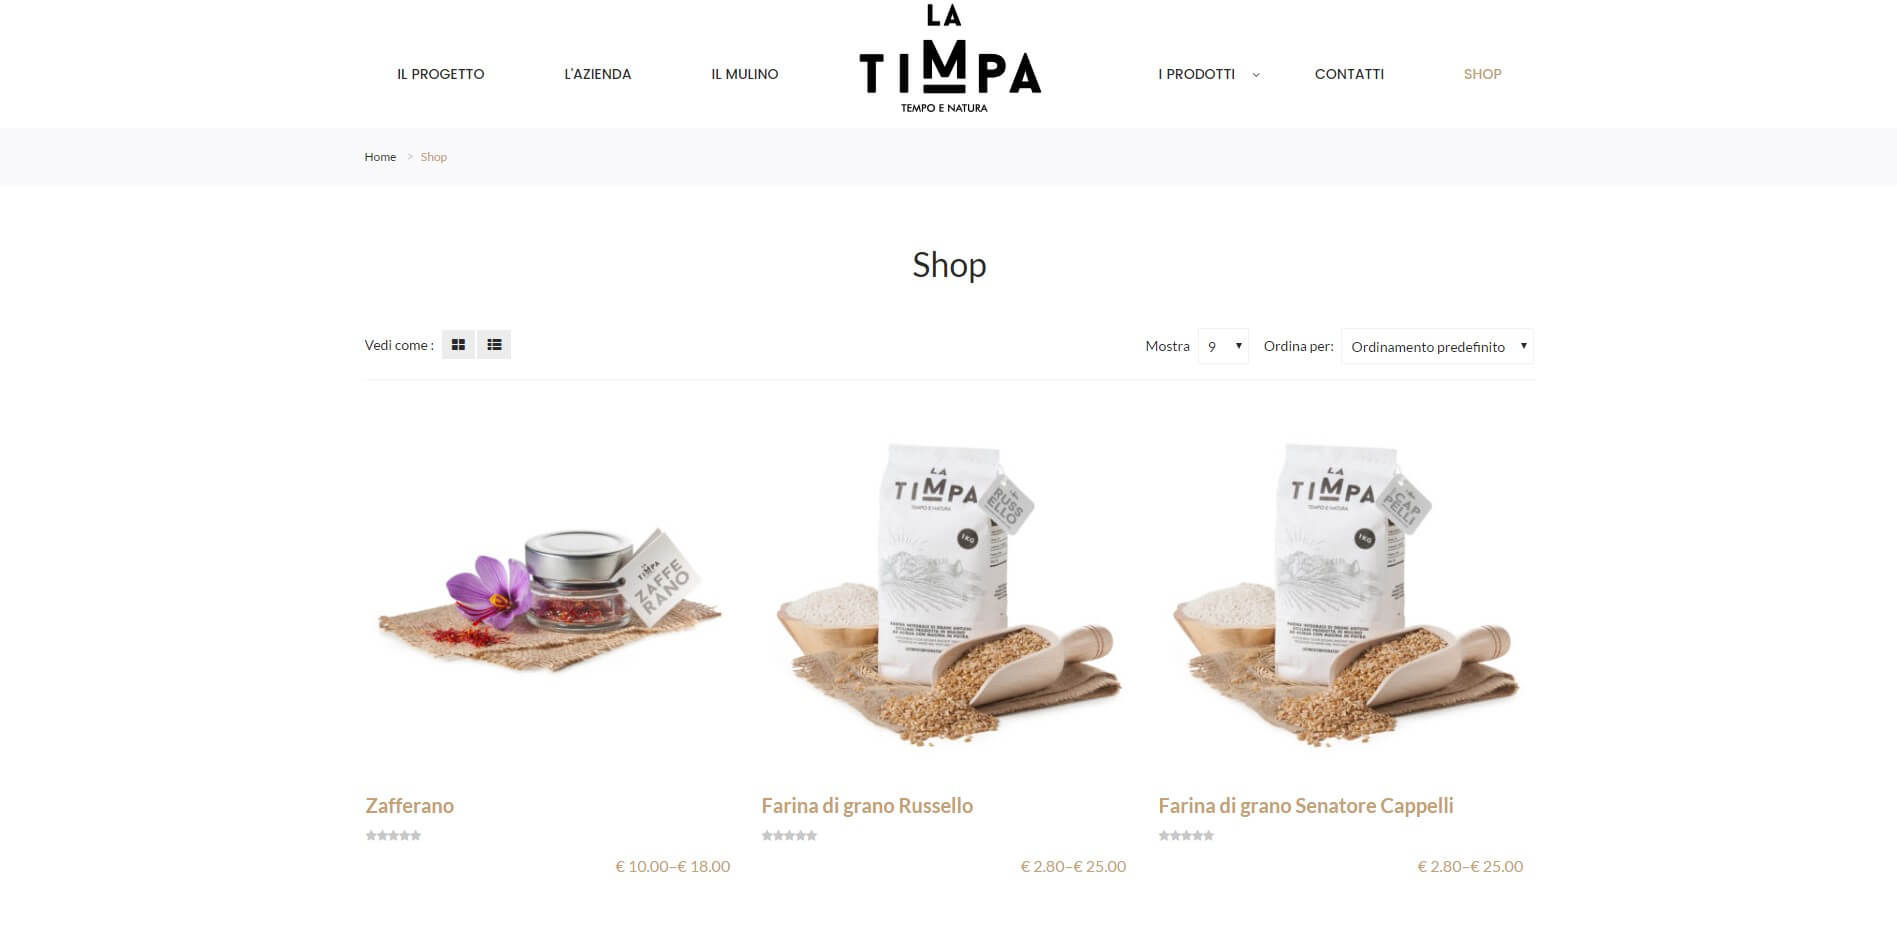 latimpa-shop